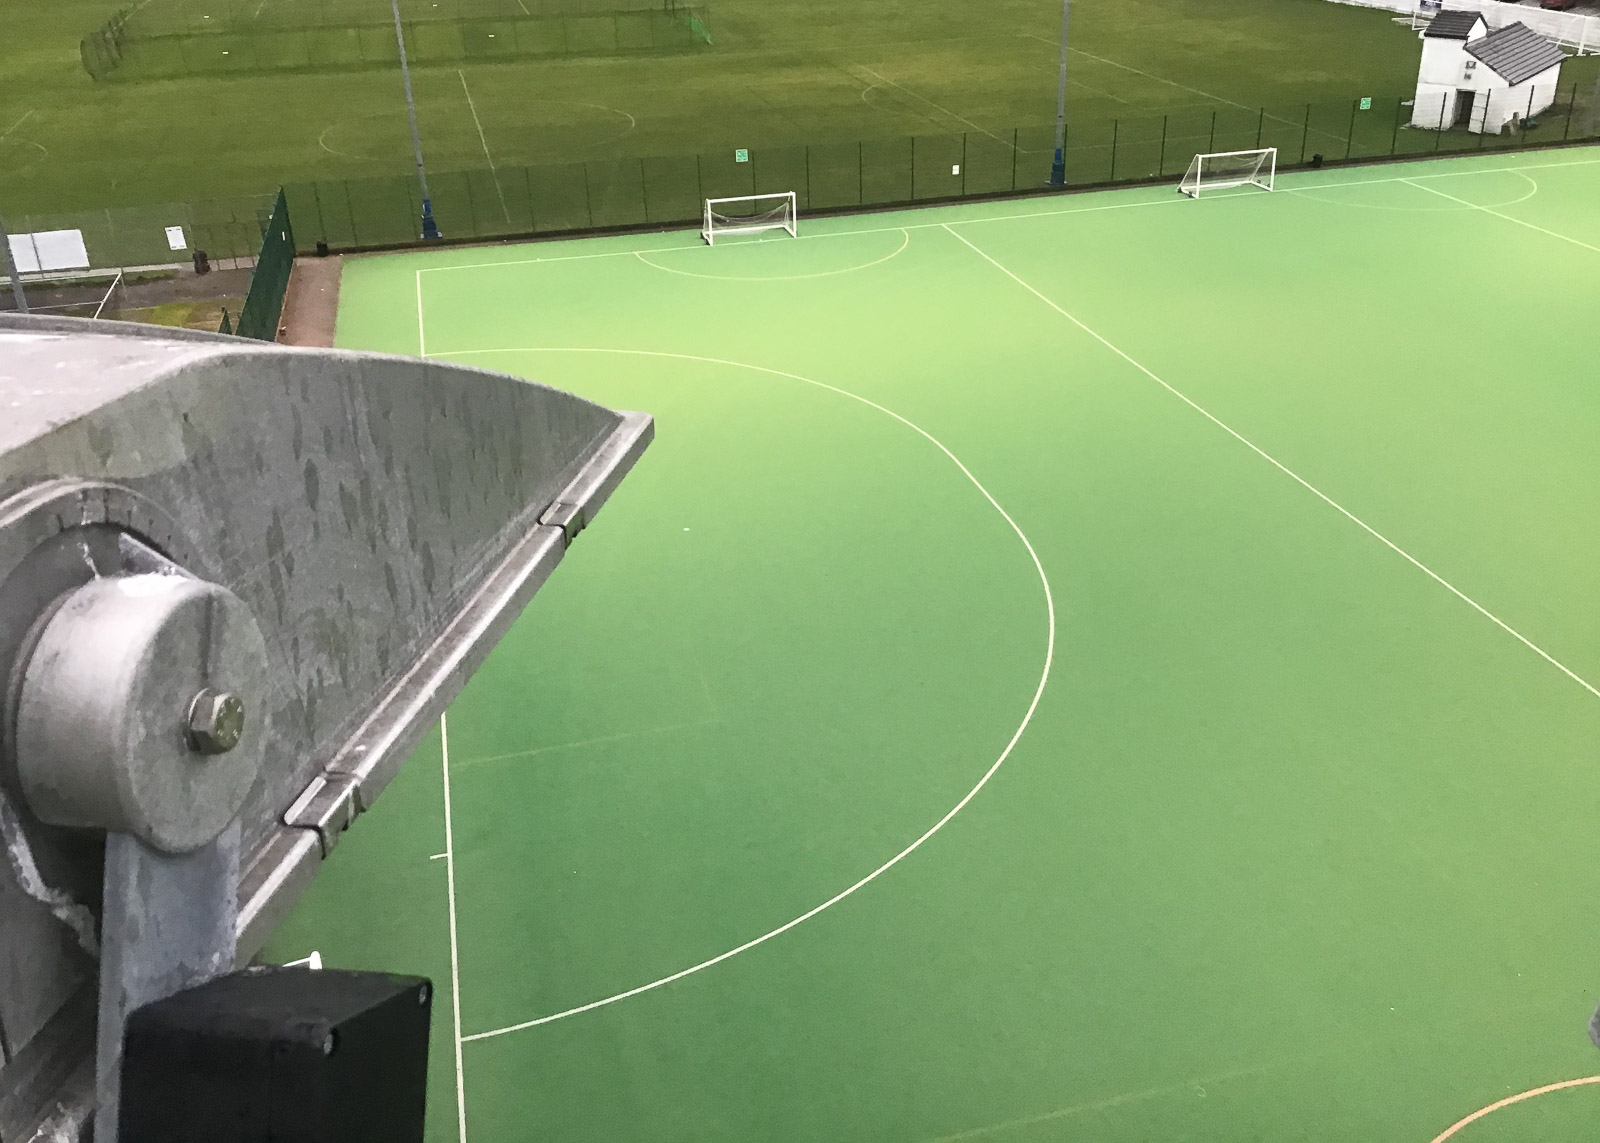 Repairs to floodlights at Wigan hockey pitch